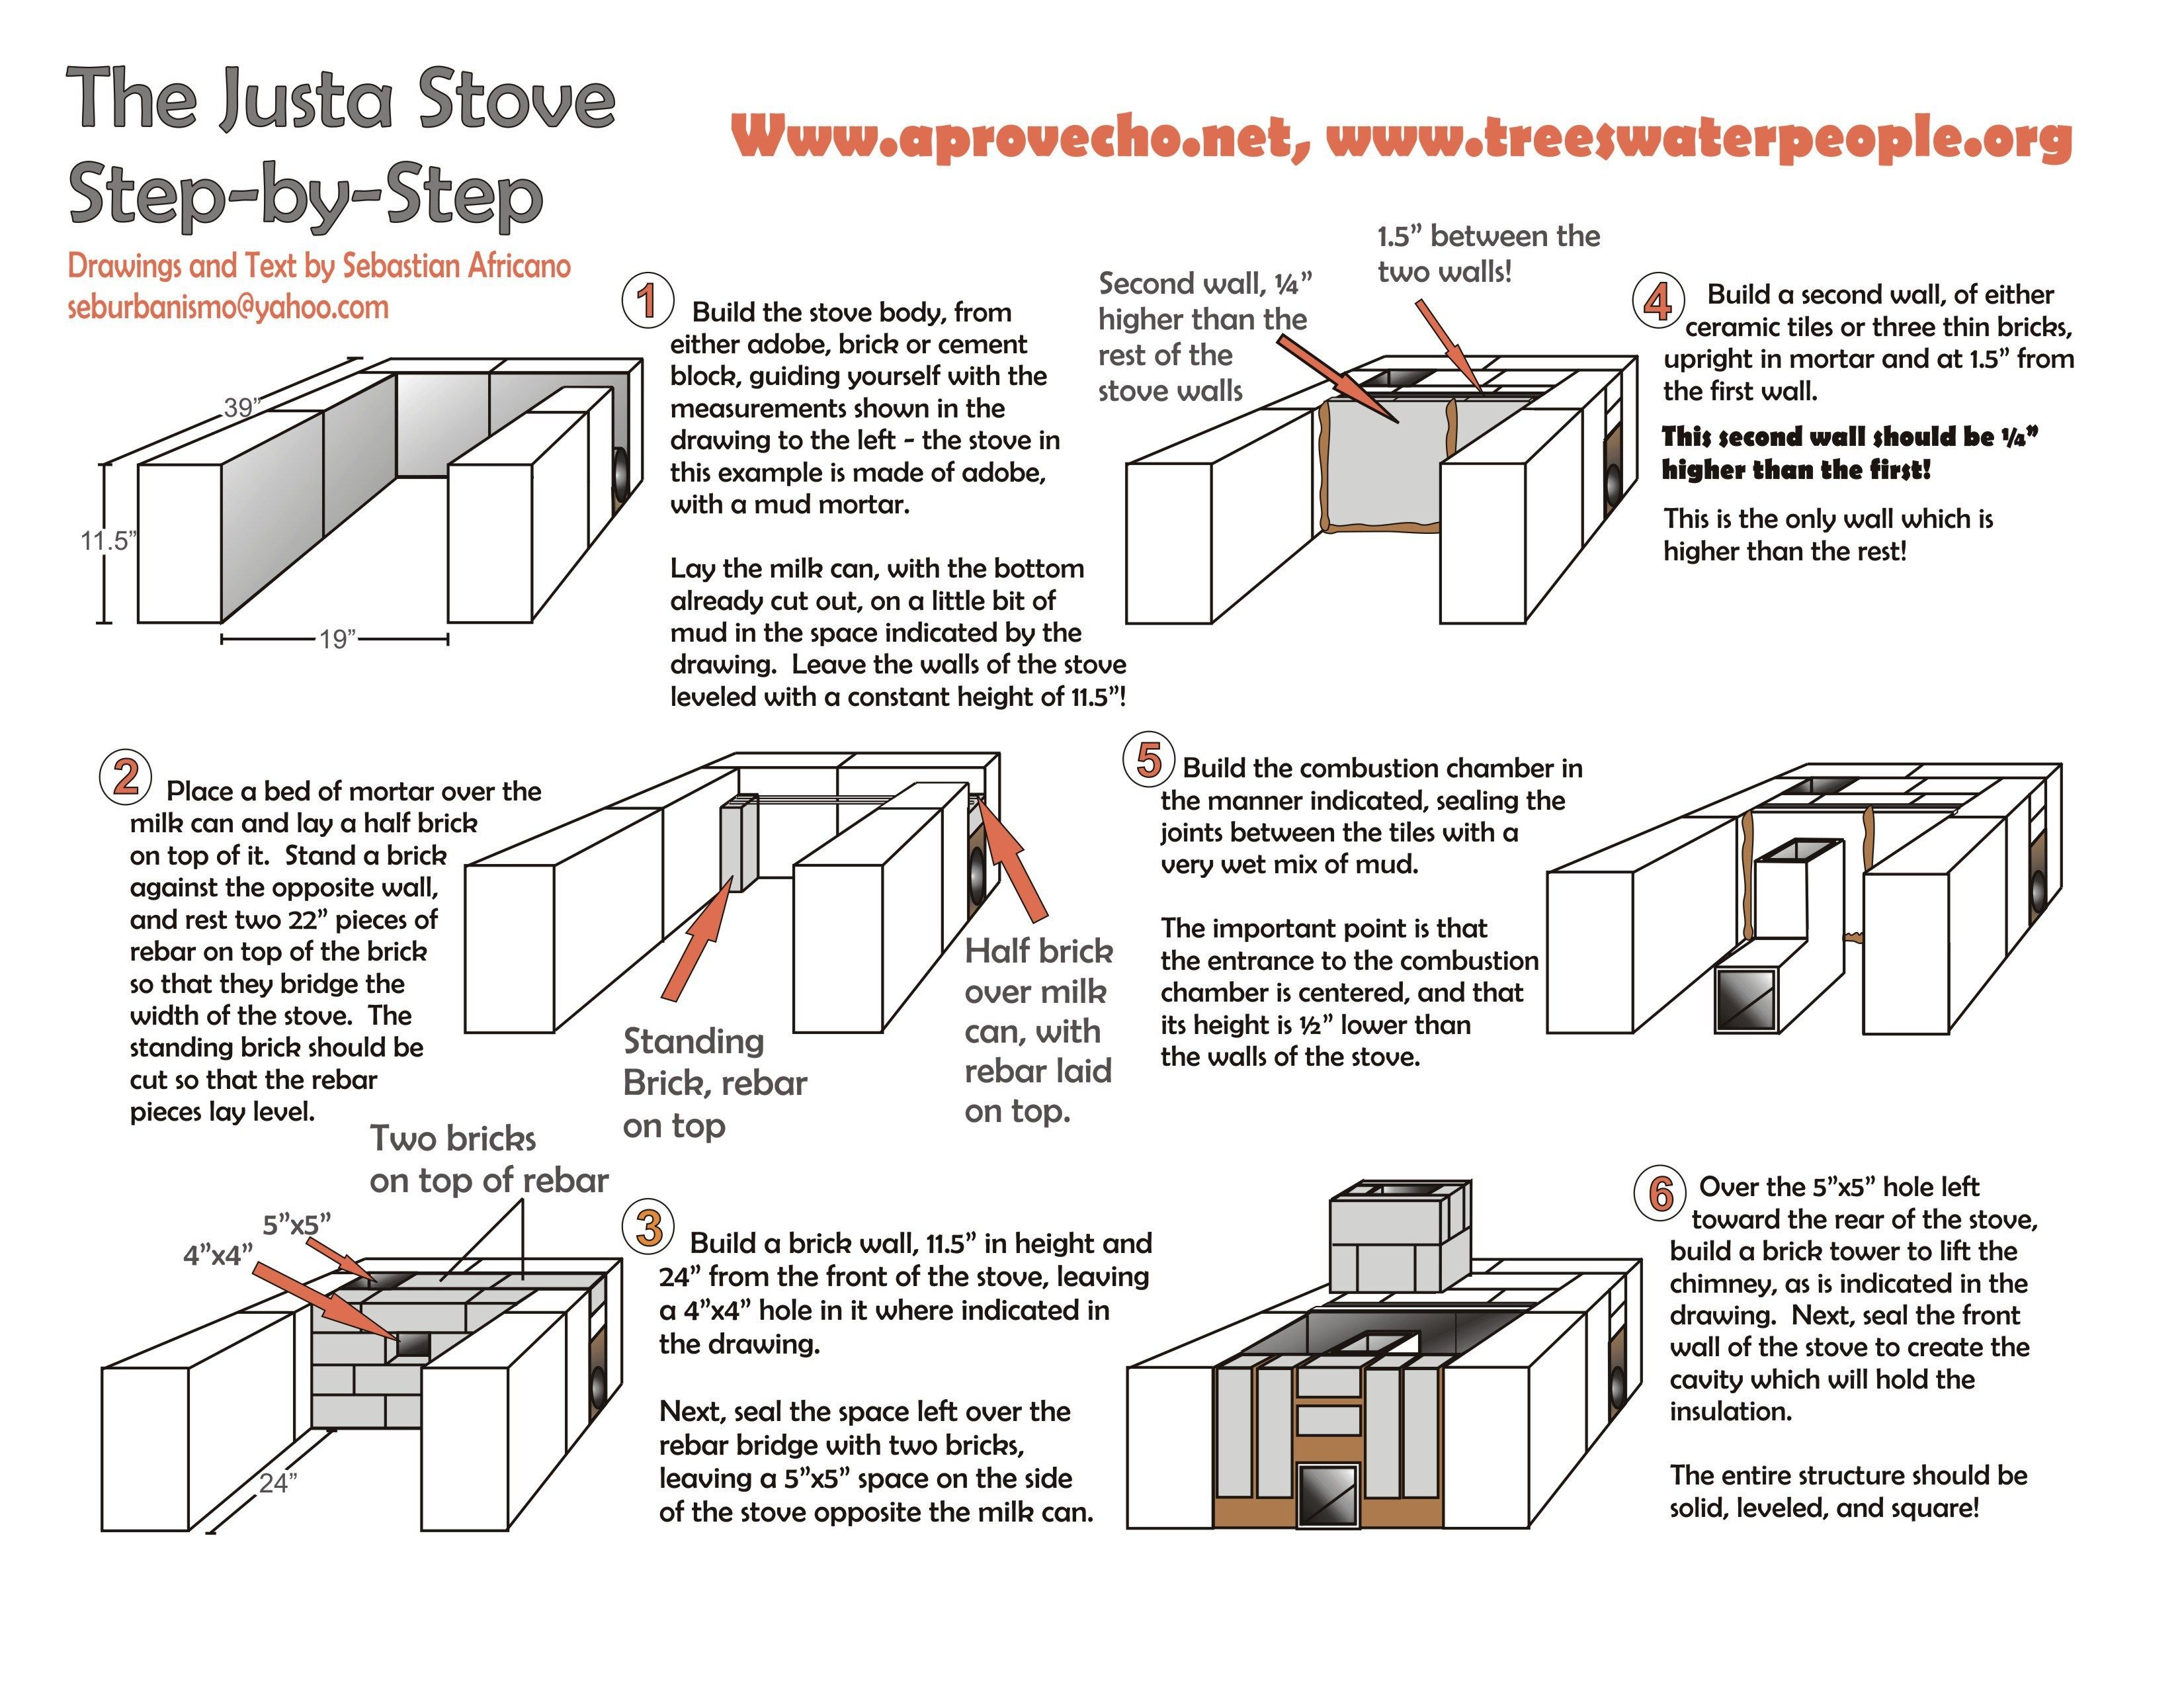 Stove Plans Plans DIY Free Download reclaimed wood end  : 352932448e5d862c77fo from jmj2002.org size 1024 x 788 jpeg 154kB